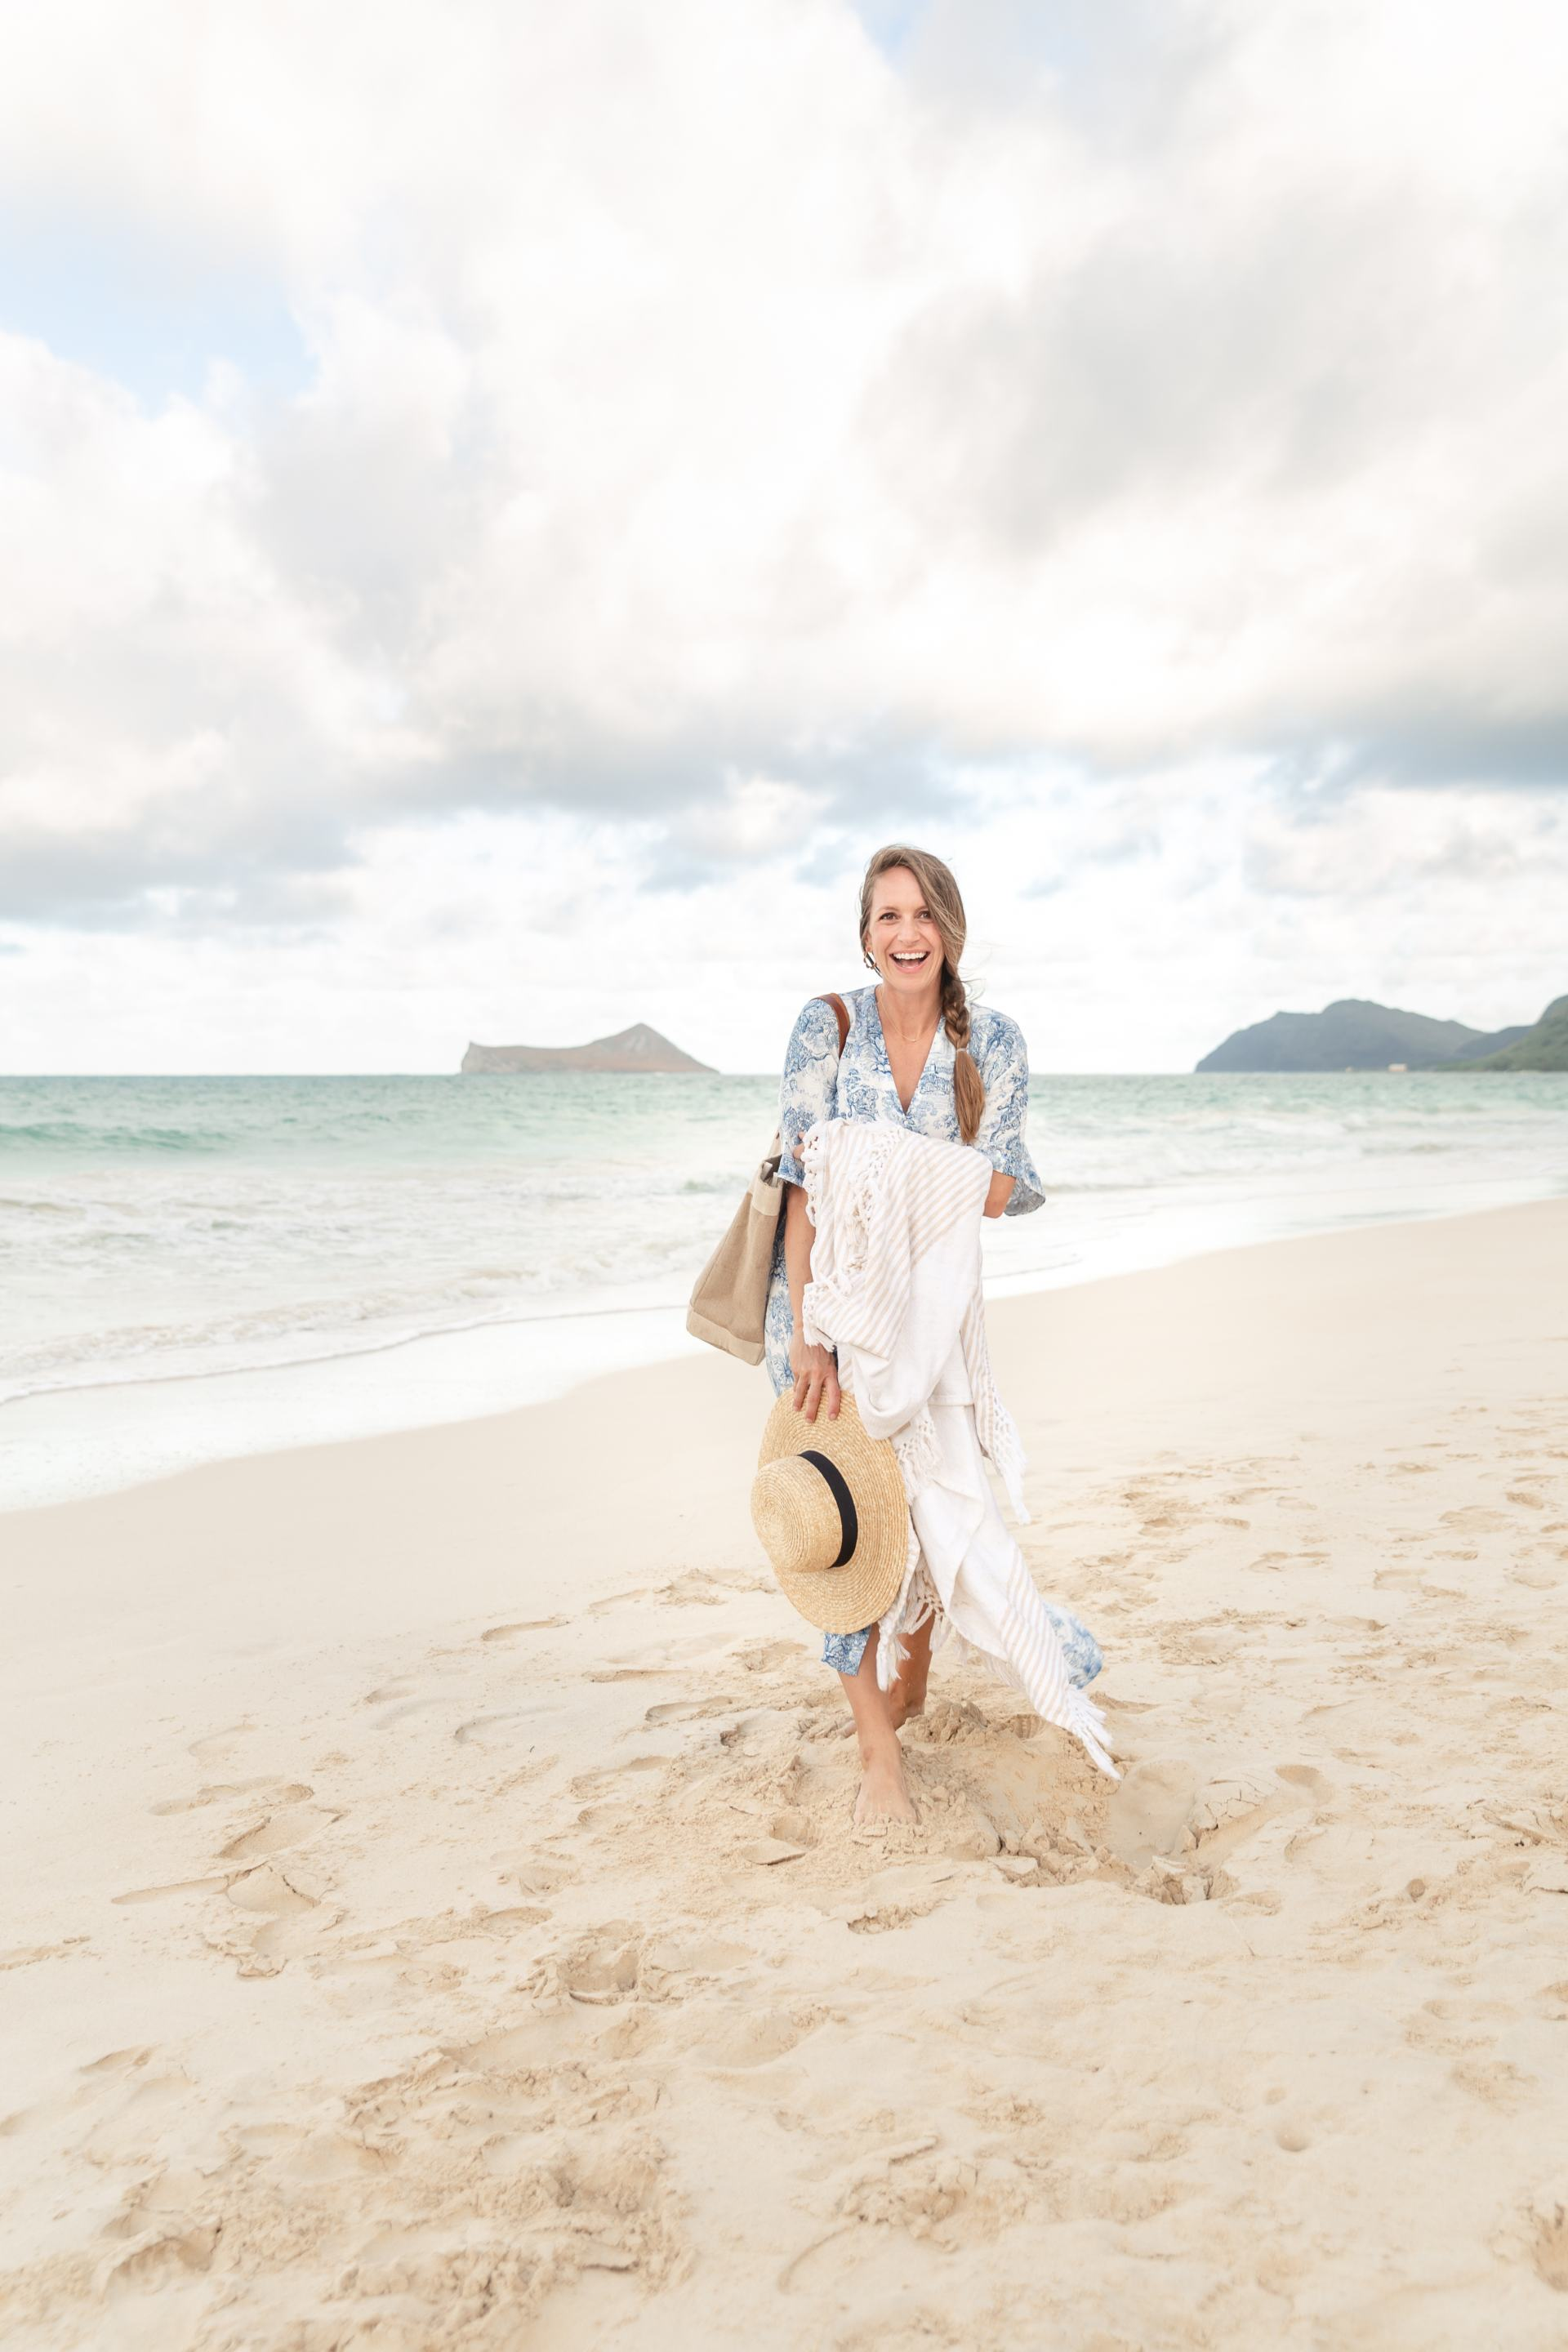 maternity photos - 23 weeks pregnant - beach maternity photos - pregnancy photos - hawaii beach photos - hawaii beach photographer - blue and white dress - H&M blue and white toile dress - 23 weeks pregnant maternity photo shoot - maternity shoot - maternity photo ideas - pregnancy photo ideas - waimanalo beach - hawaii blogger - honolulu blogger - mom blogger - classic style